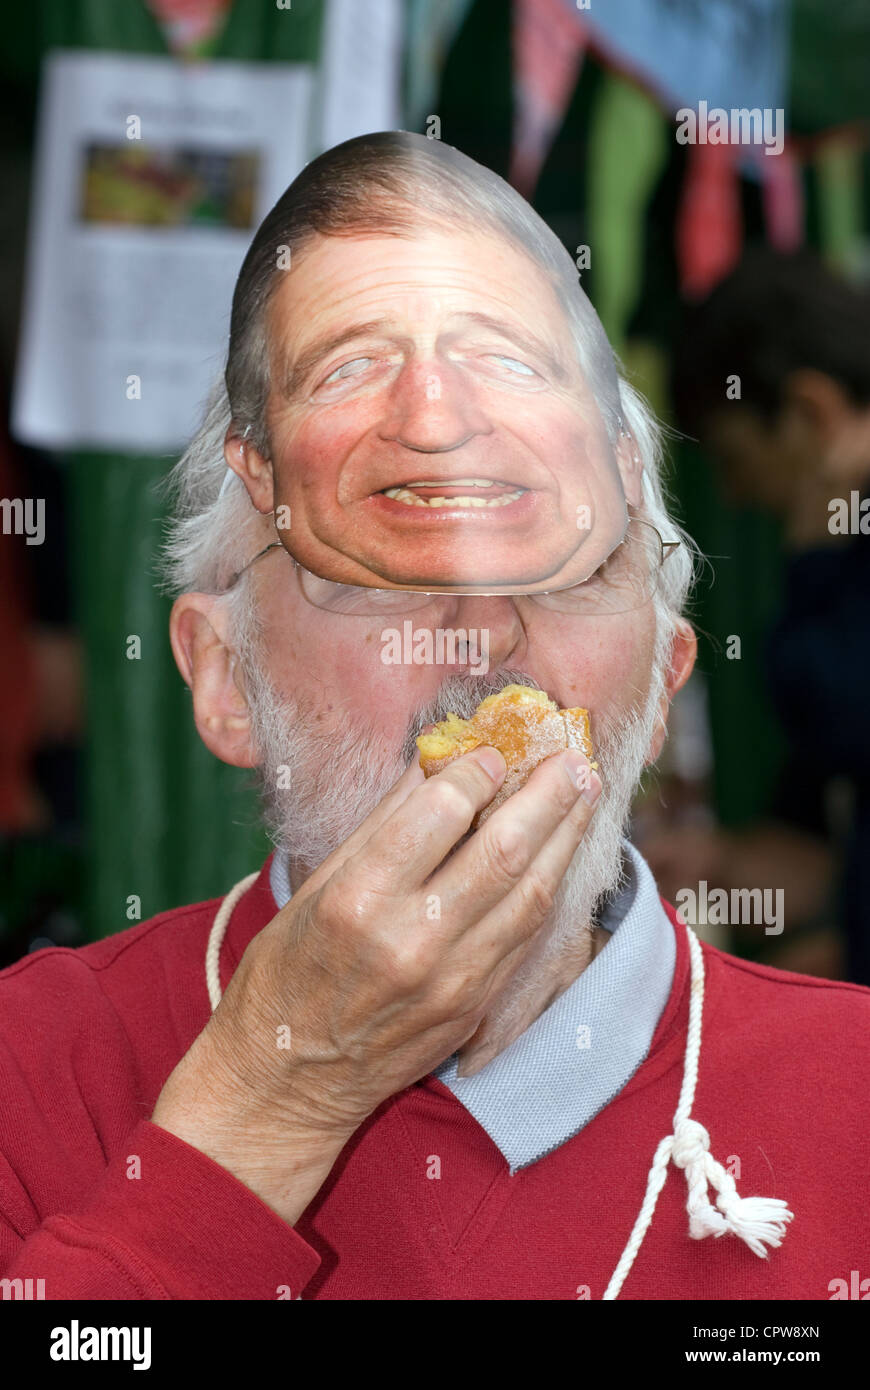 Un homme âgé portant un masque de Prince Charles et manger une collation au Dockenfield fete & Diamond Photo Stock